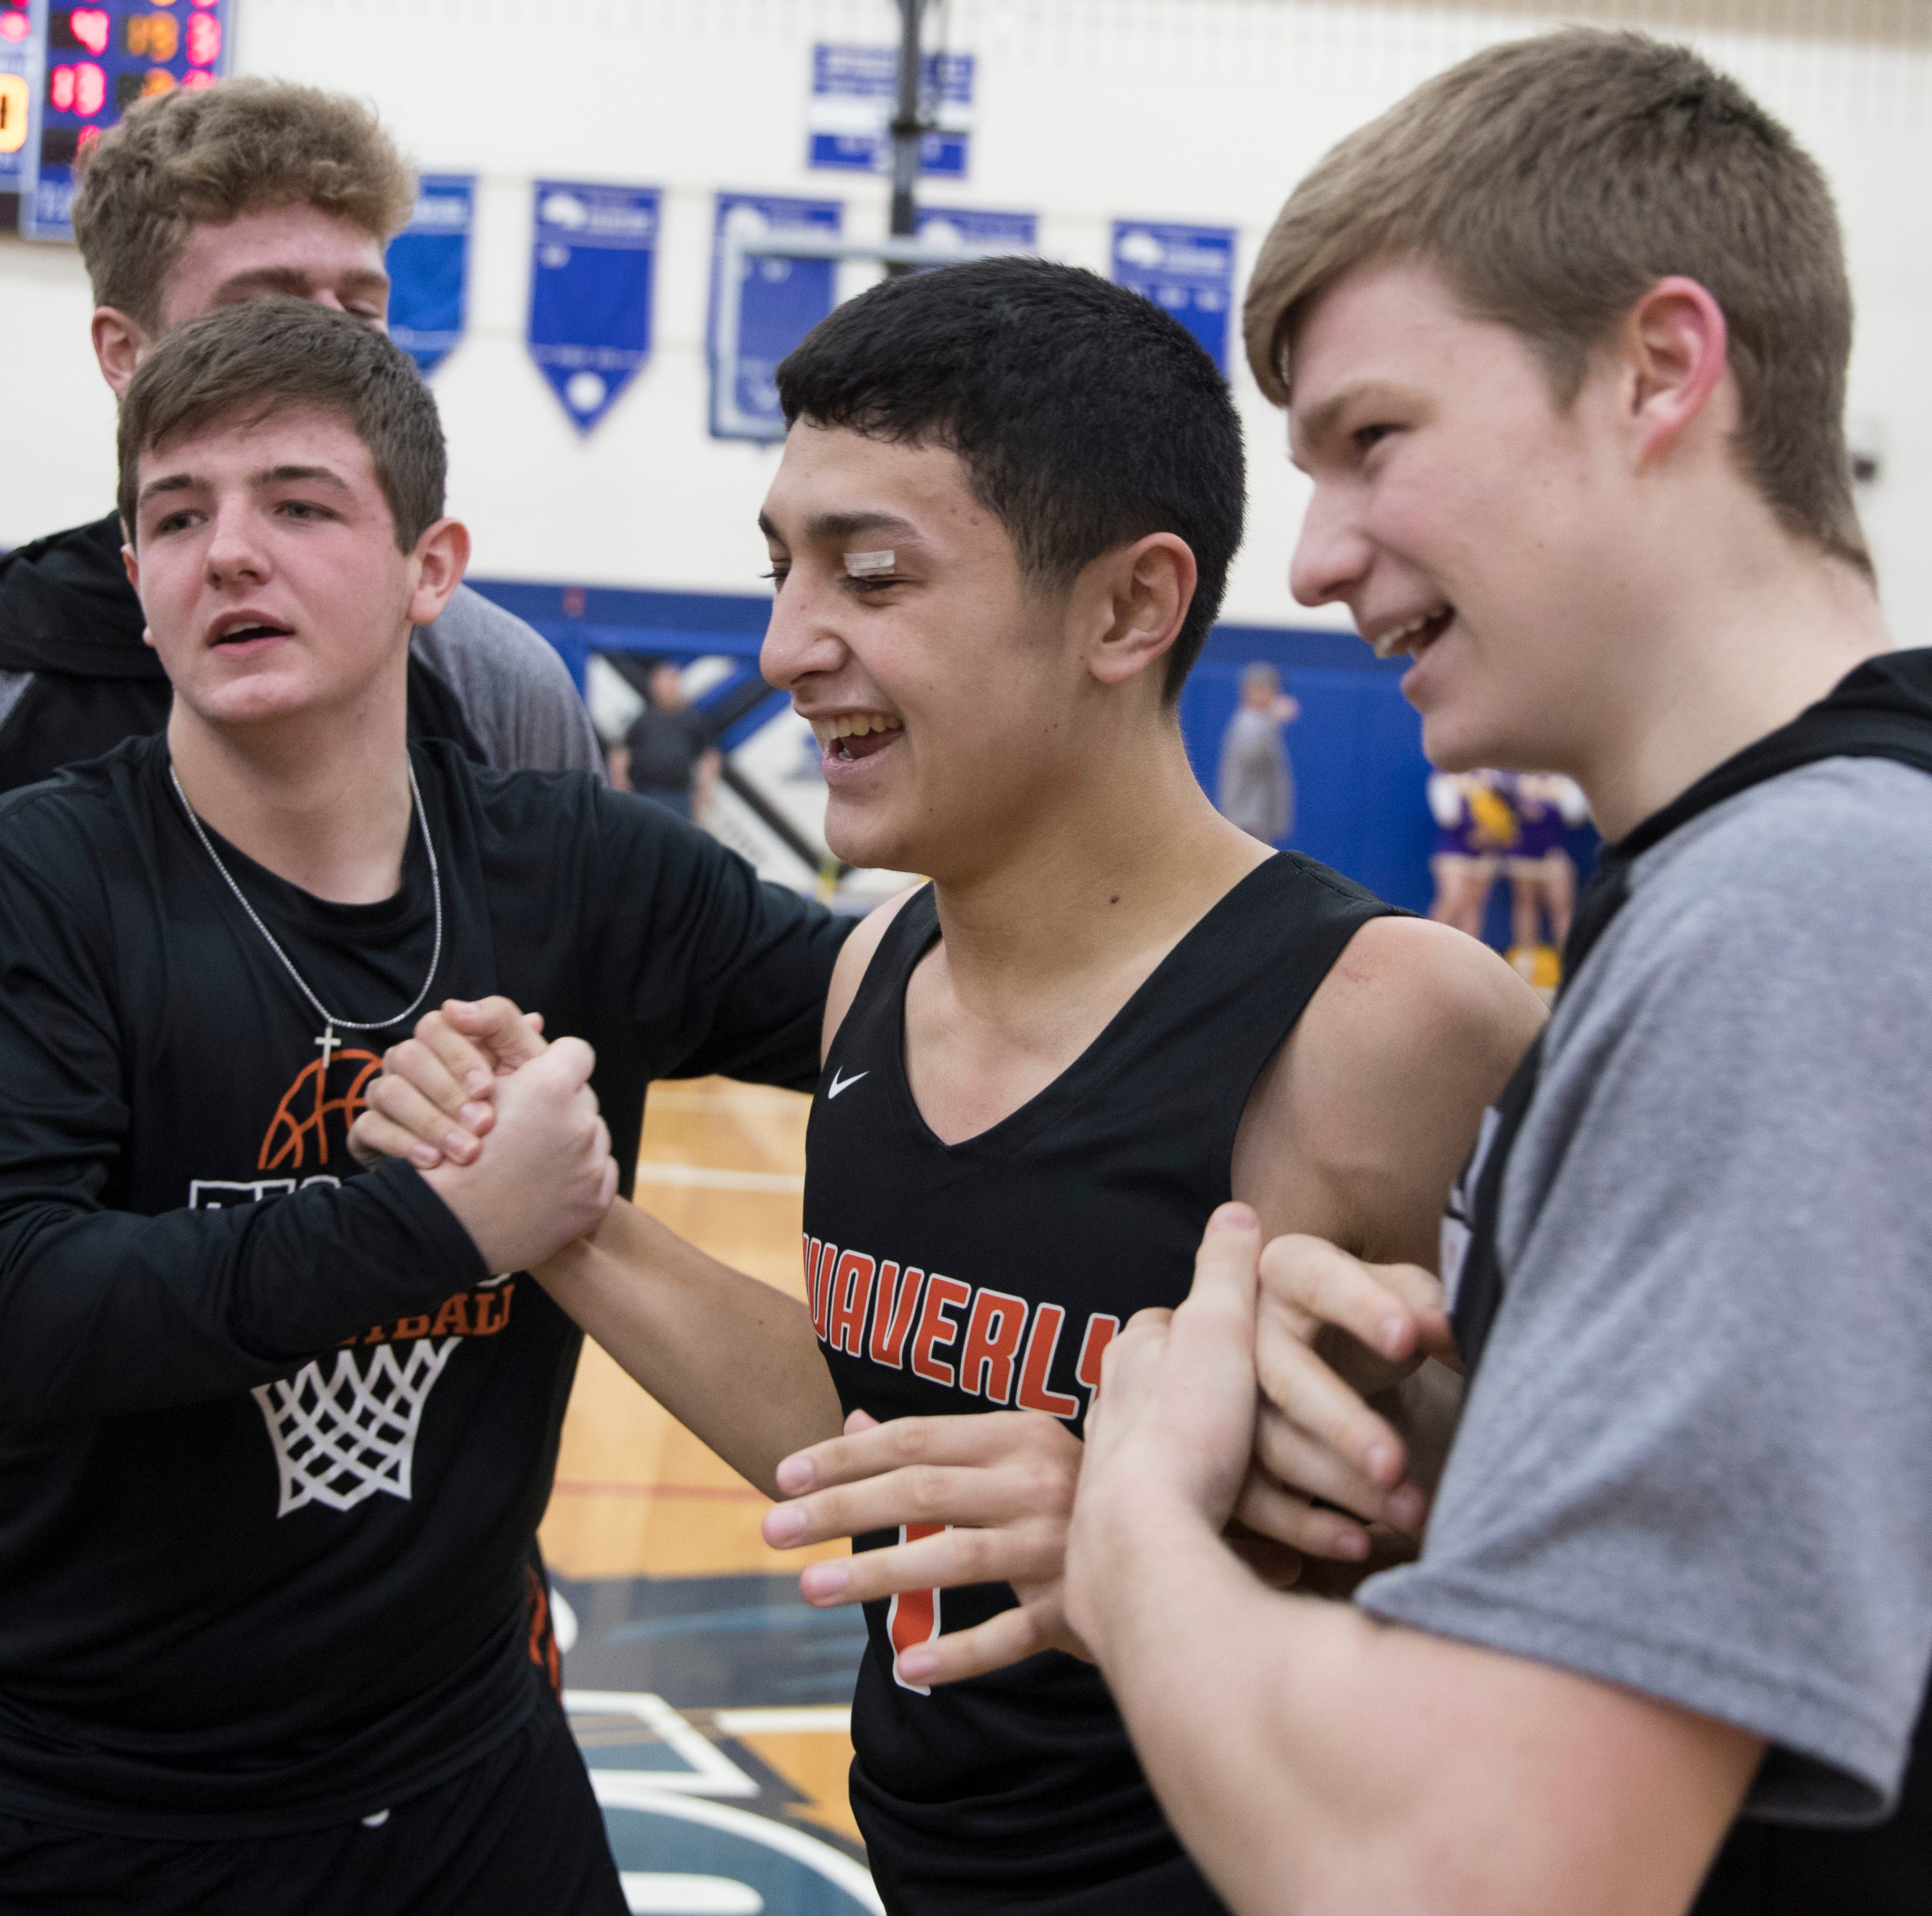 At the buzzer: Waverly advances to district semifinal after buzzer-beating win over McClain